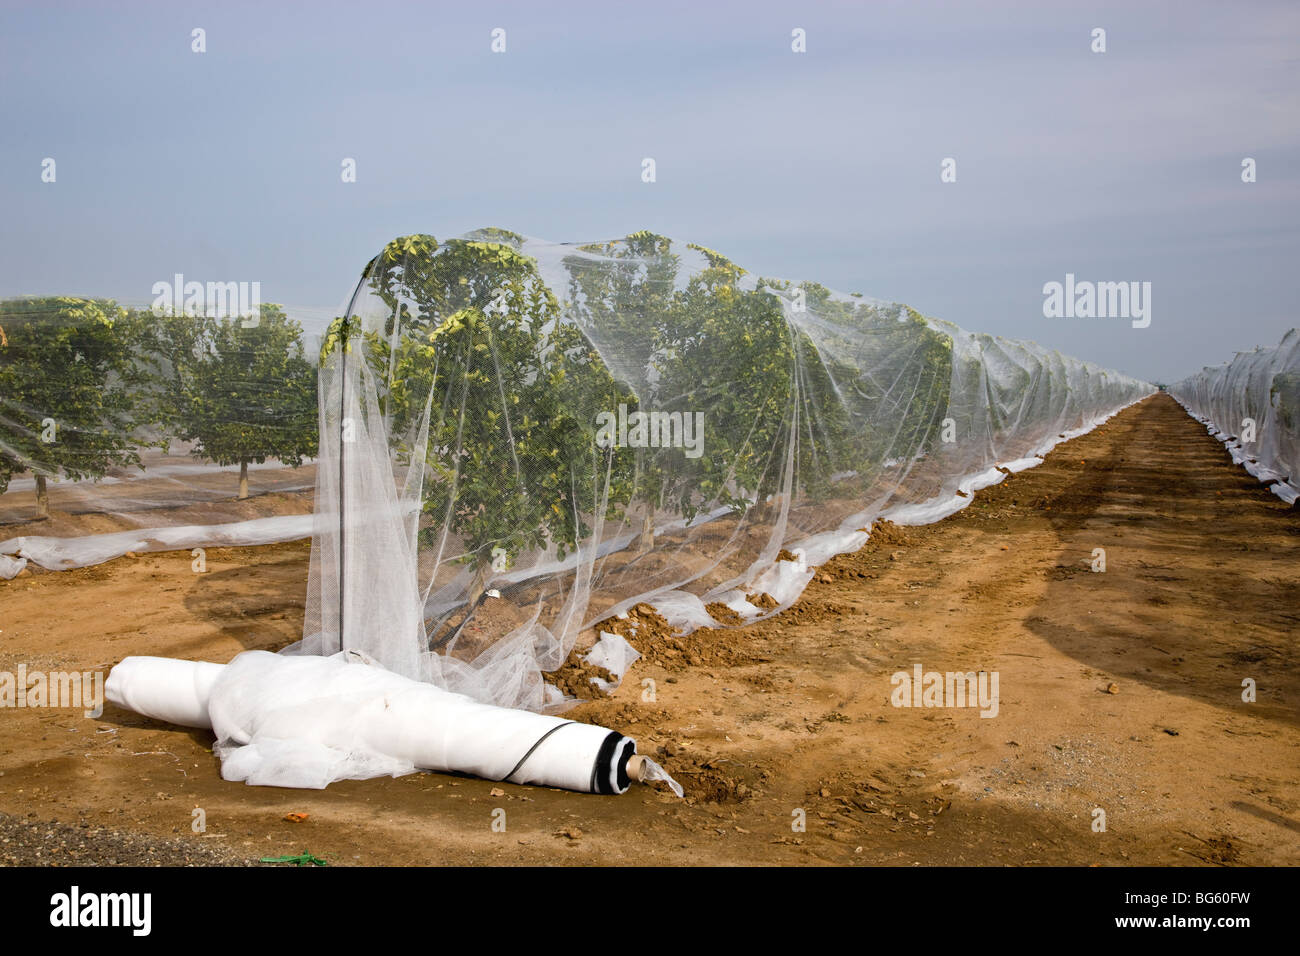 Netting over young 'Citrus' Mandarin trees to prevent cross pollination. - Stock Image